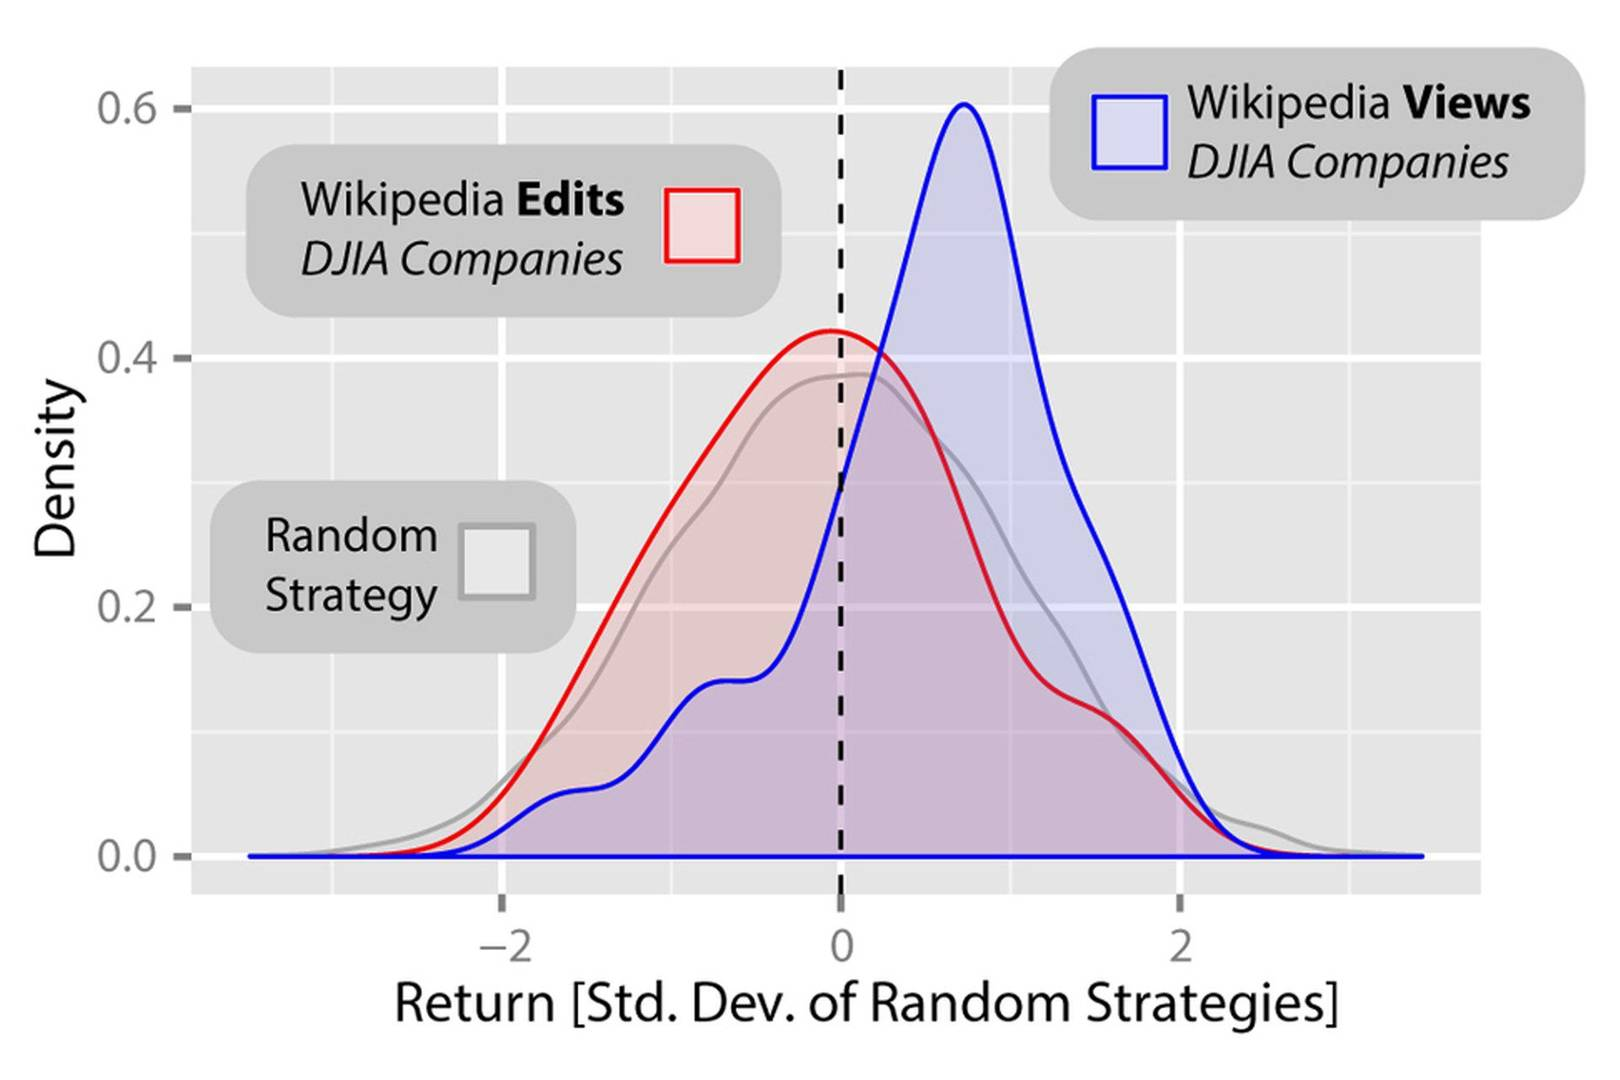 Wikipedia page views could predict stock market changes